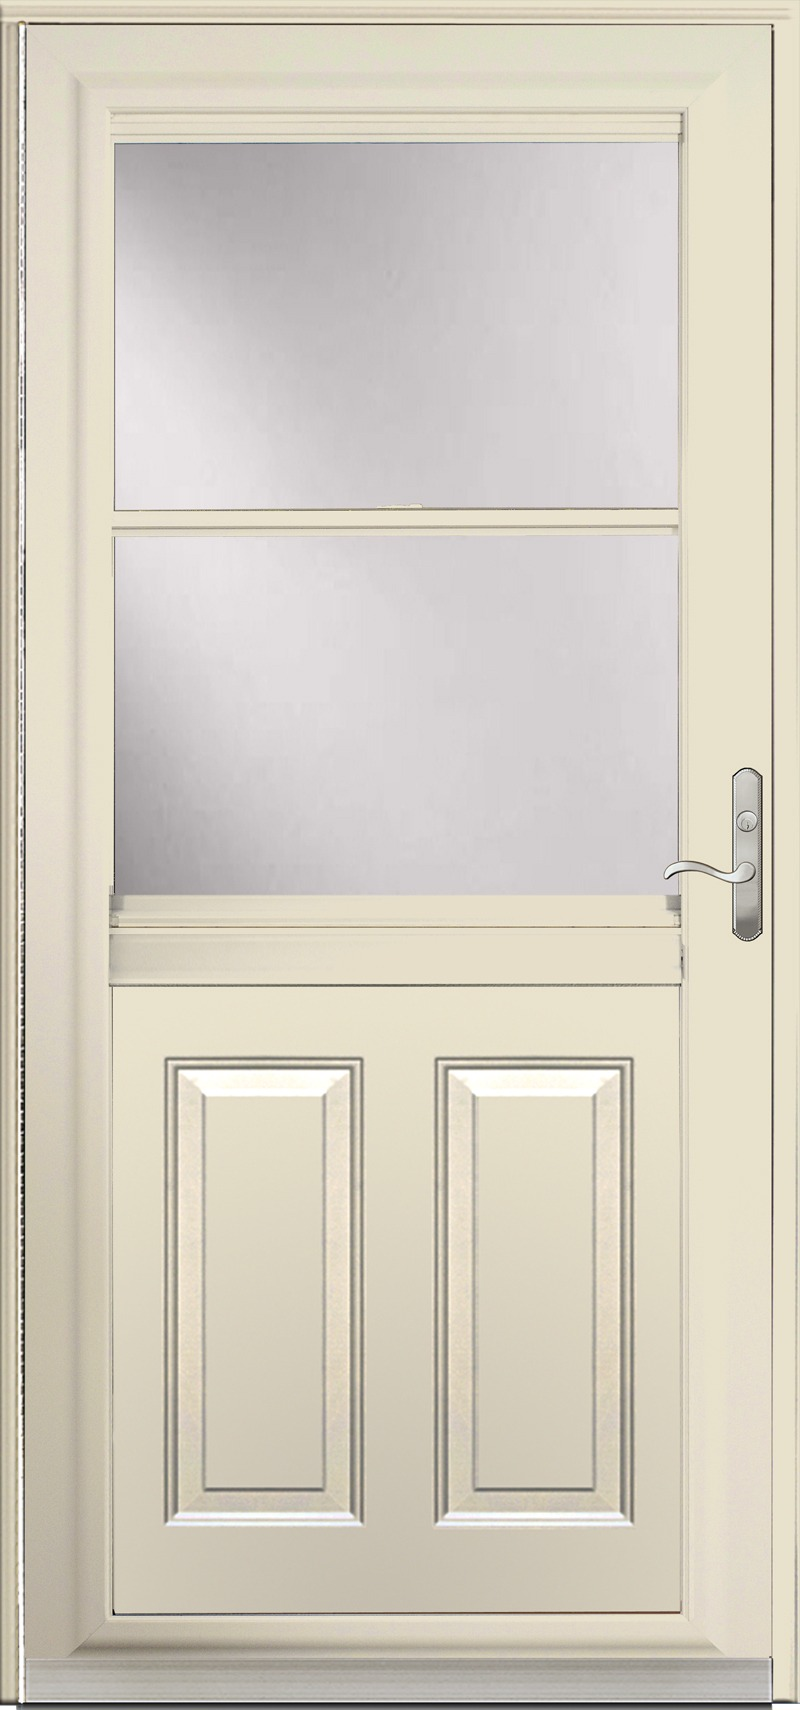 A cream colored door with glass in the upper half